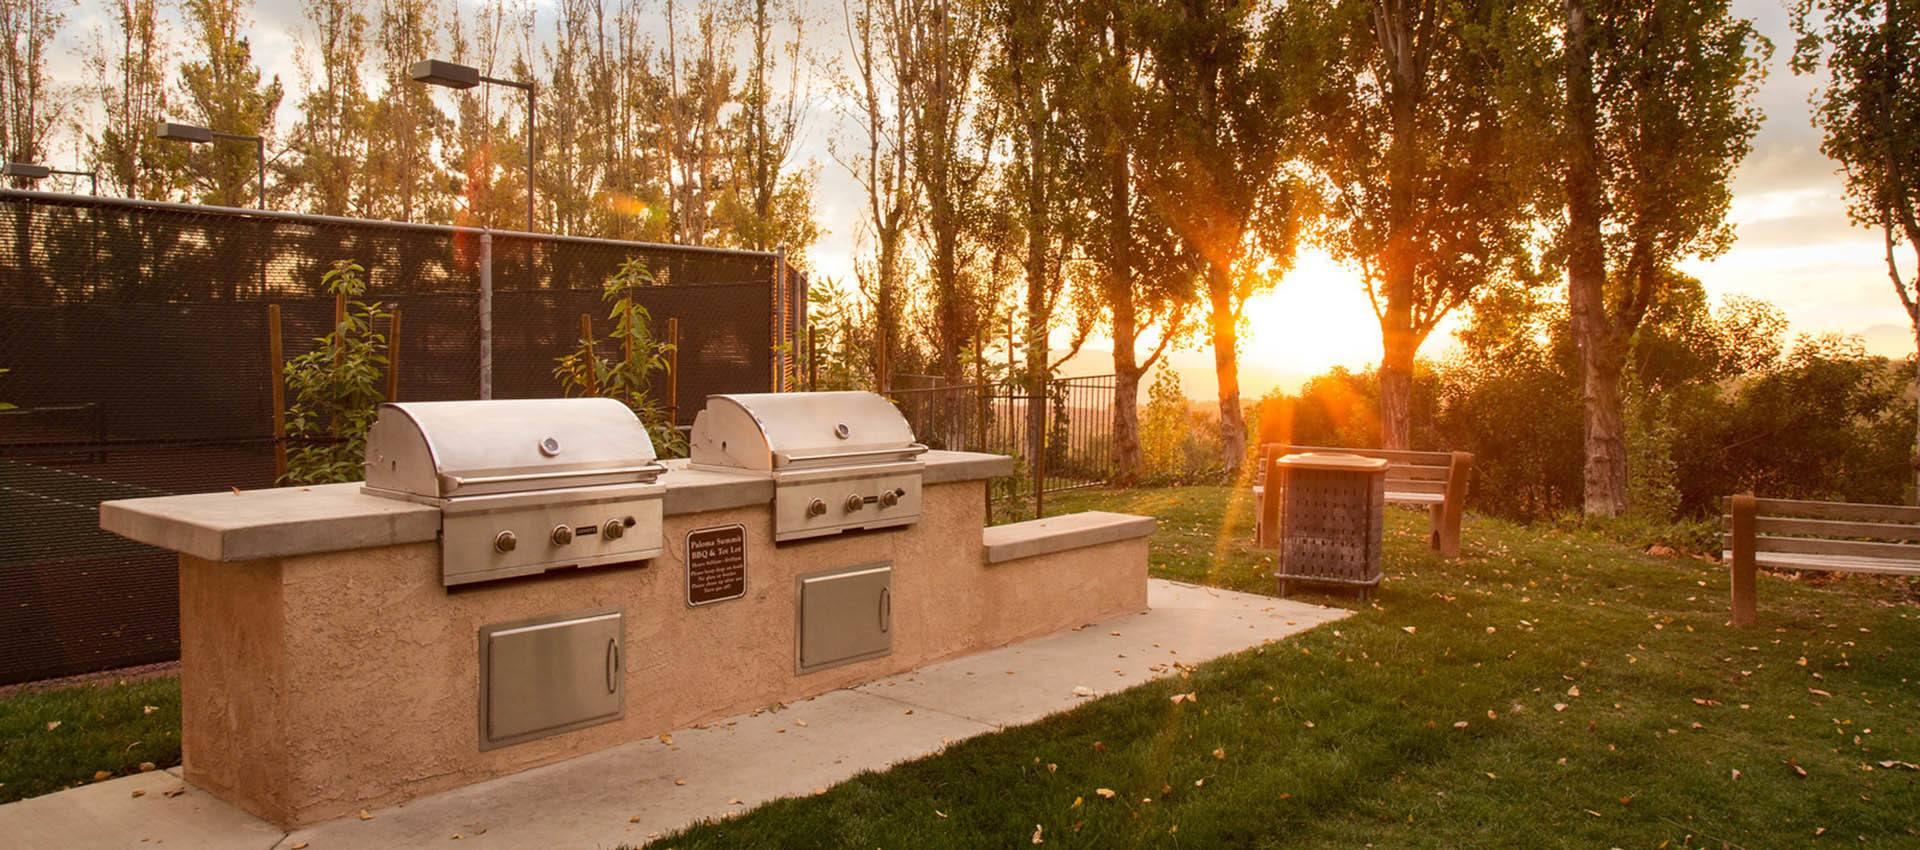 Enjoy Our Onsite Bbq Grills at Paloma Summit Condominium Rentals in Foothill Ranch, CA